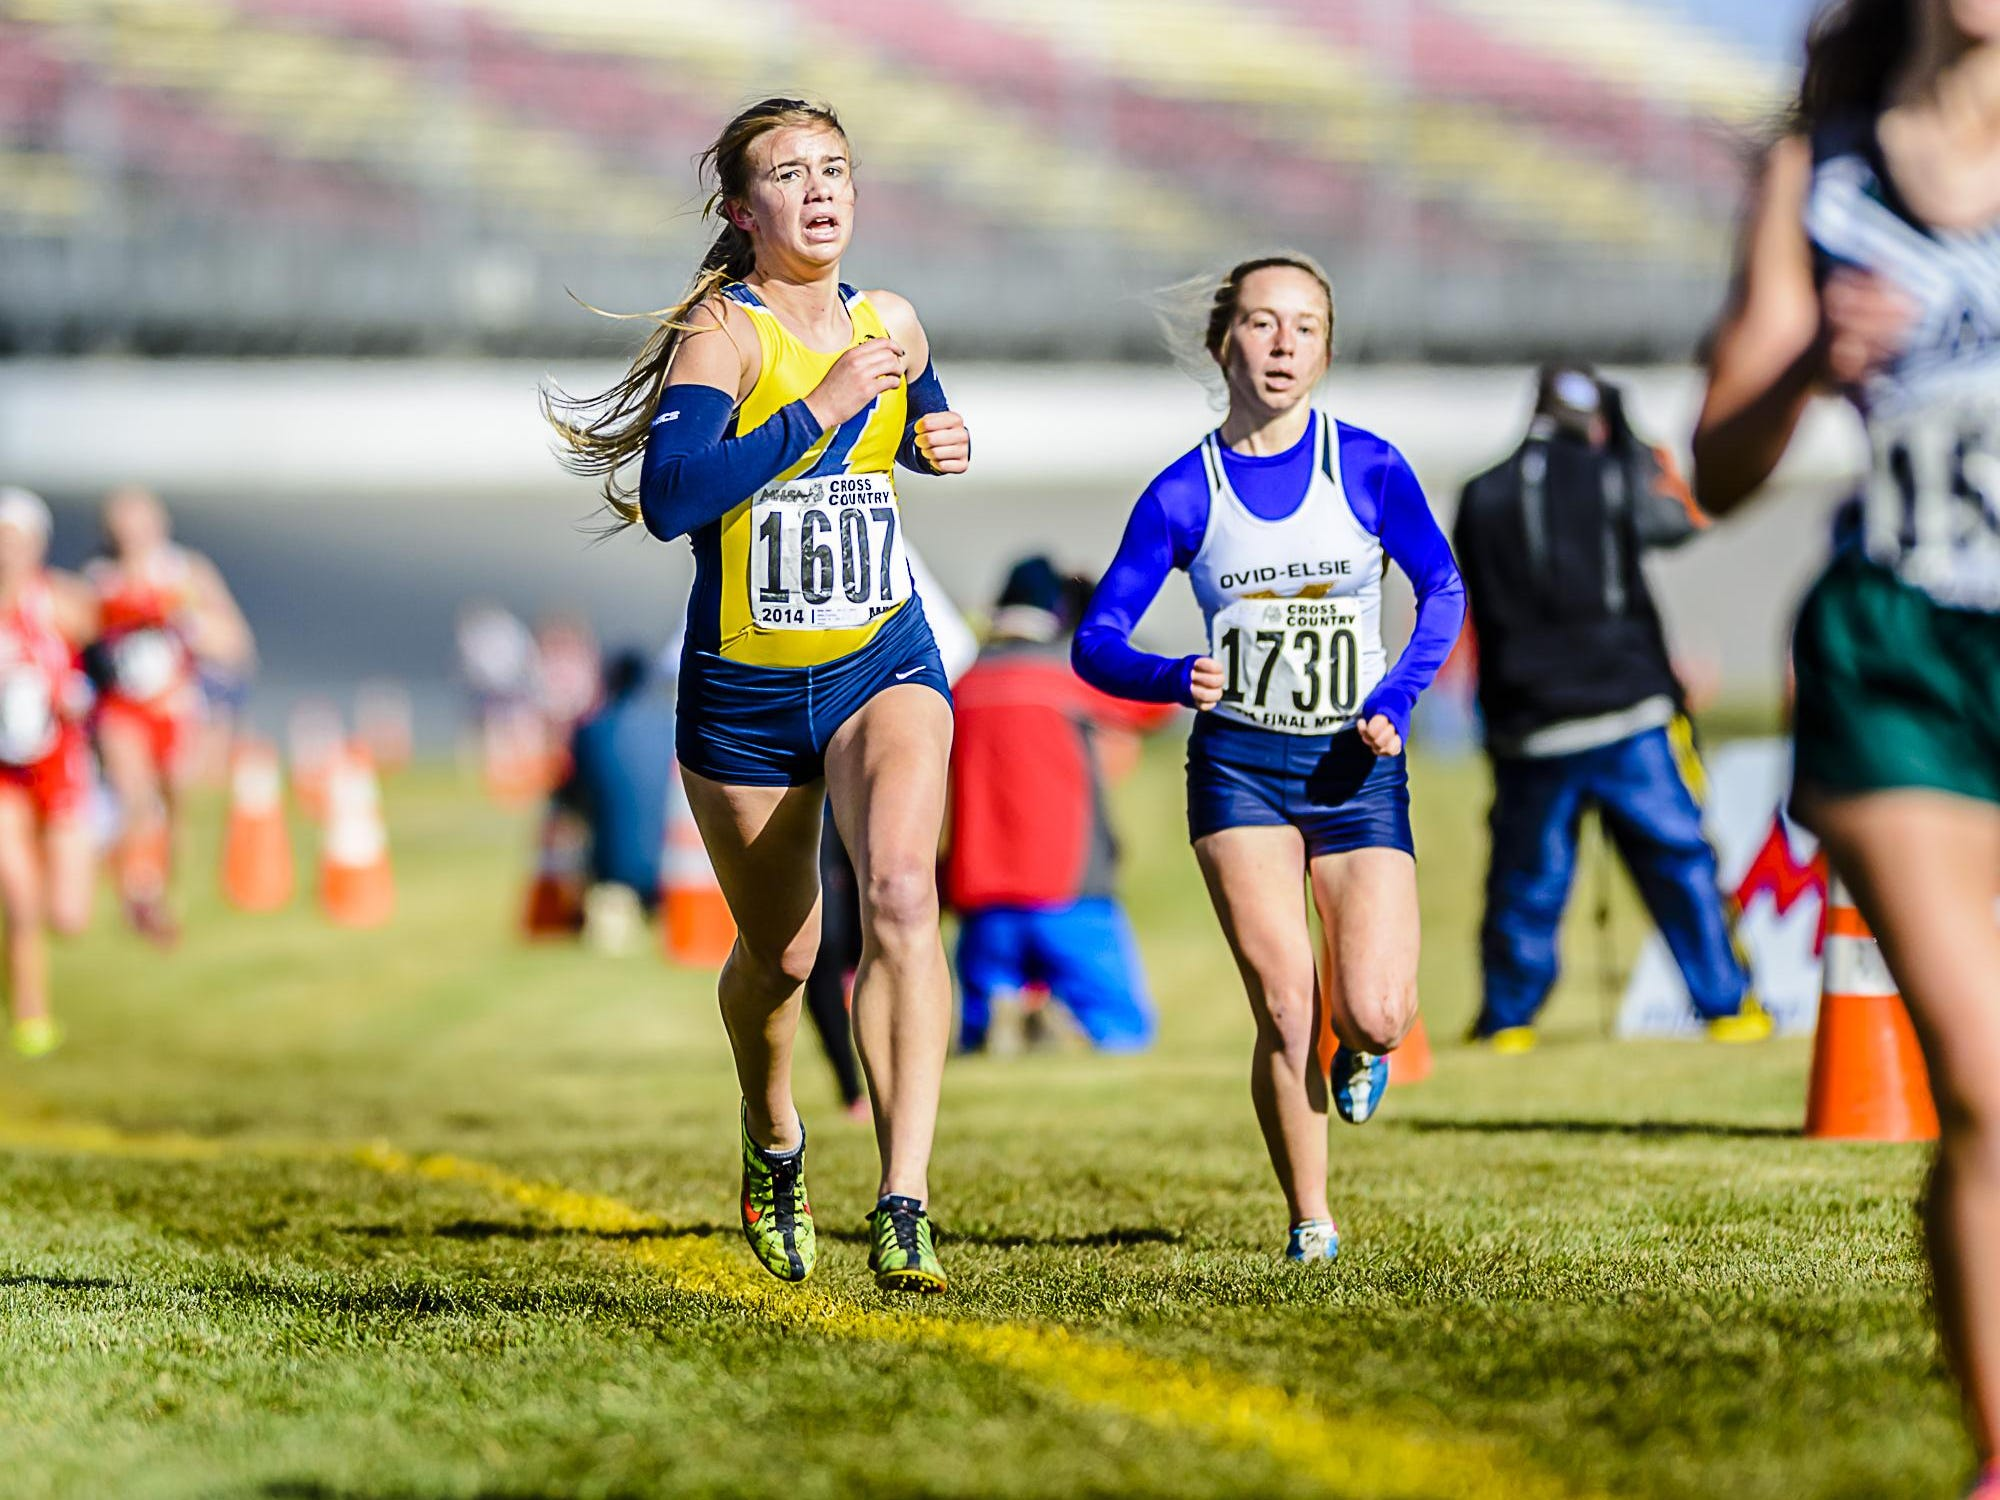 Junior Courtney Allen has placed first at four races this fall for Ithaca.